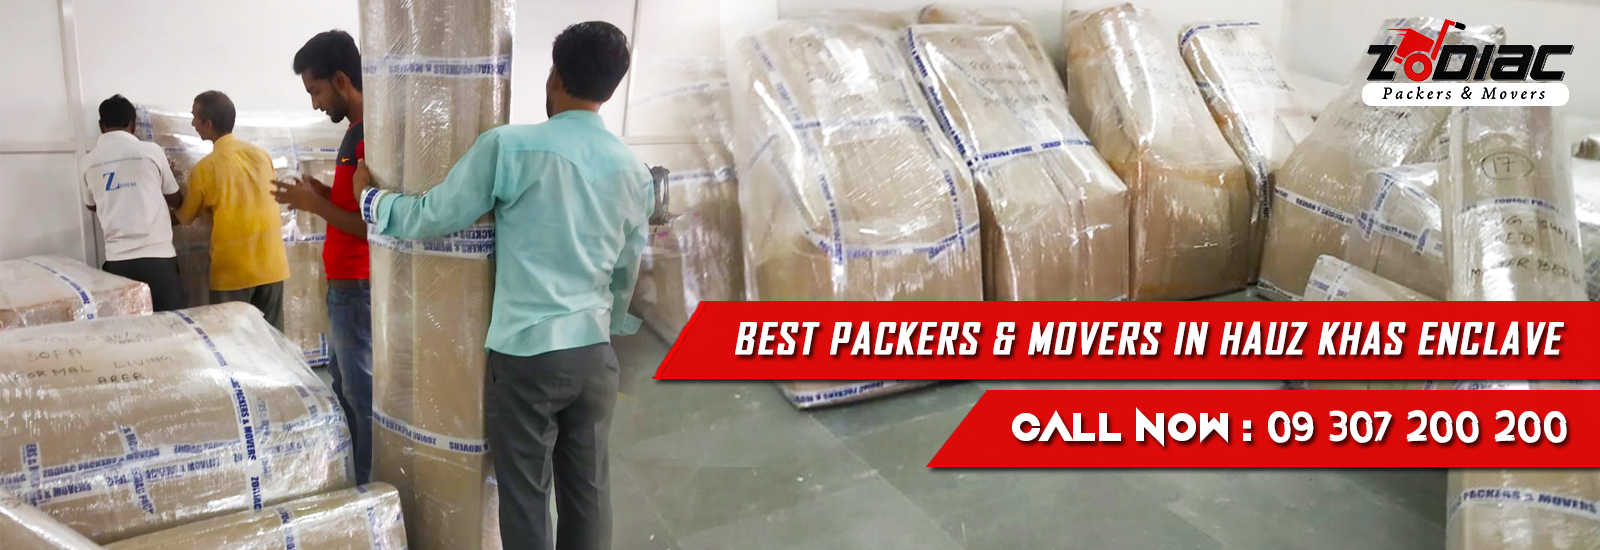 Packers and Movers in Hauz Khas Enclave